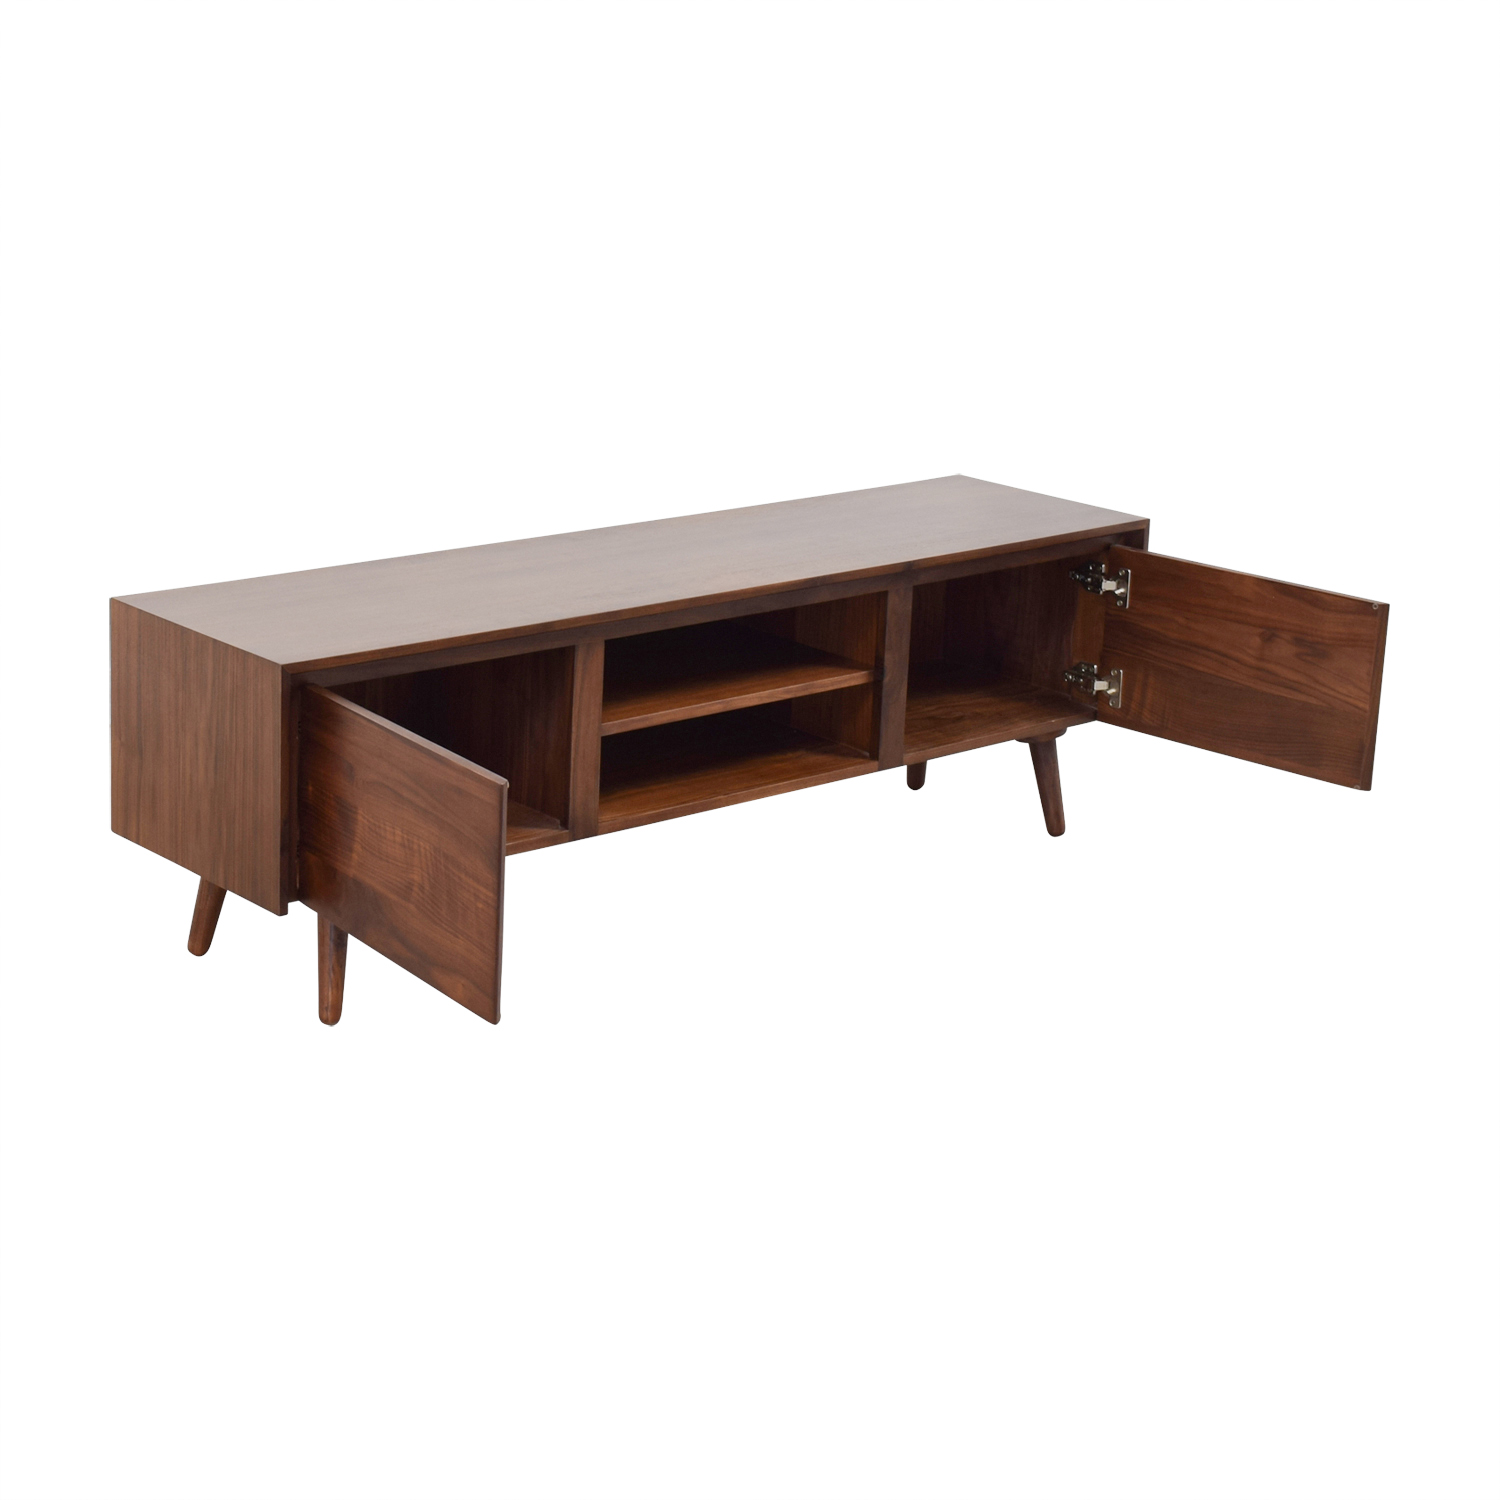 Article Article Seno Walnut Media Console Dimensions